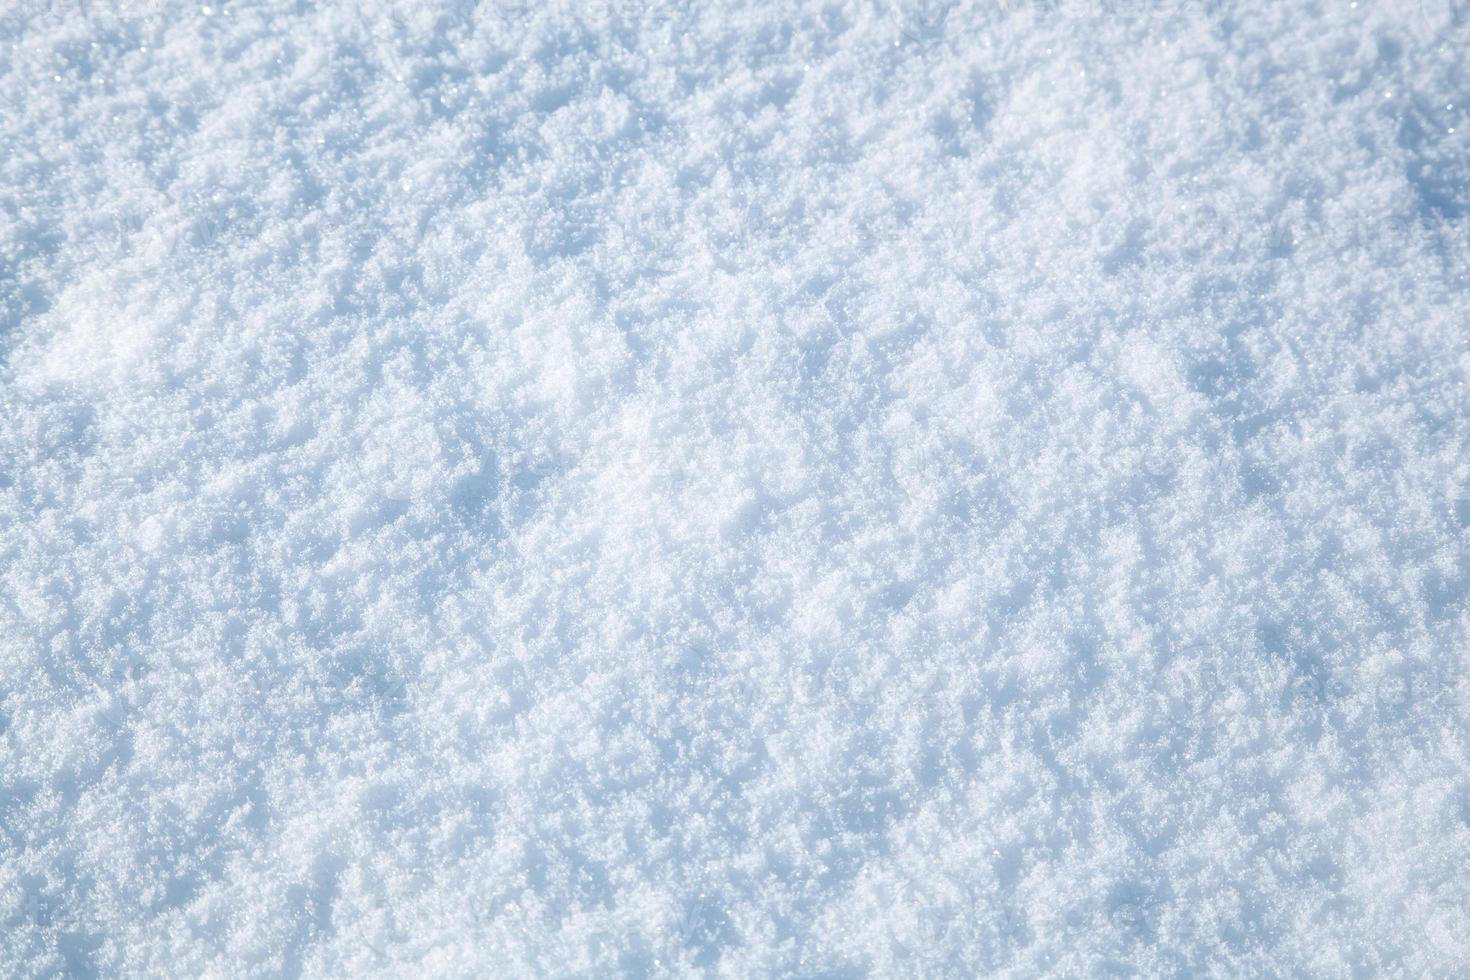 abstract winter snow background photo